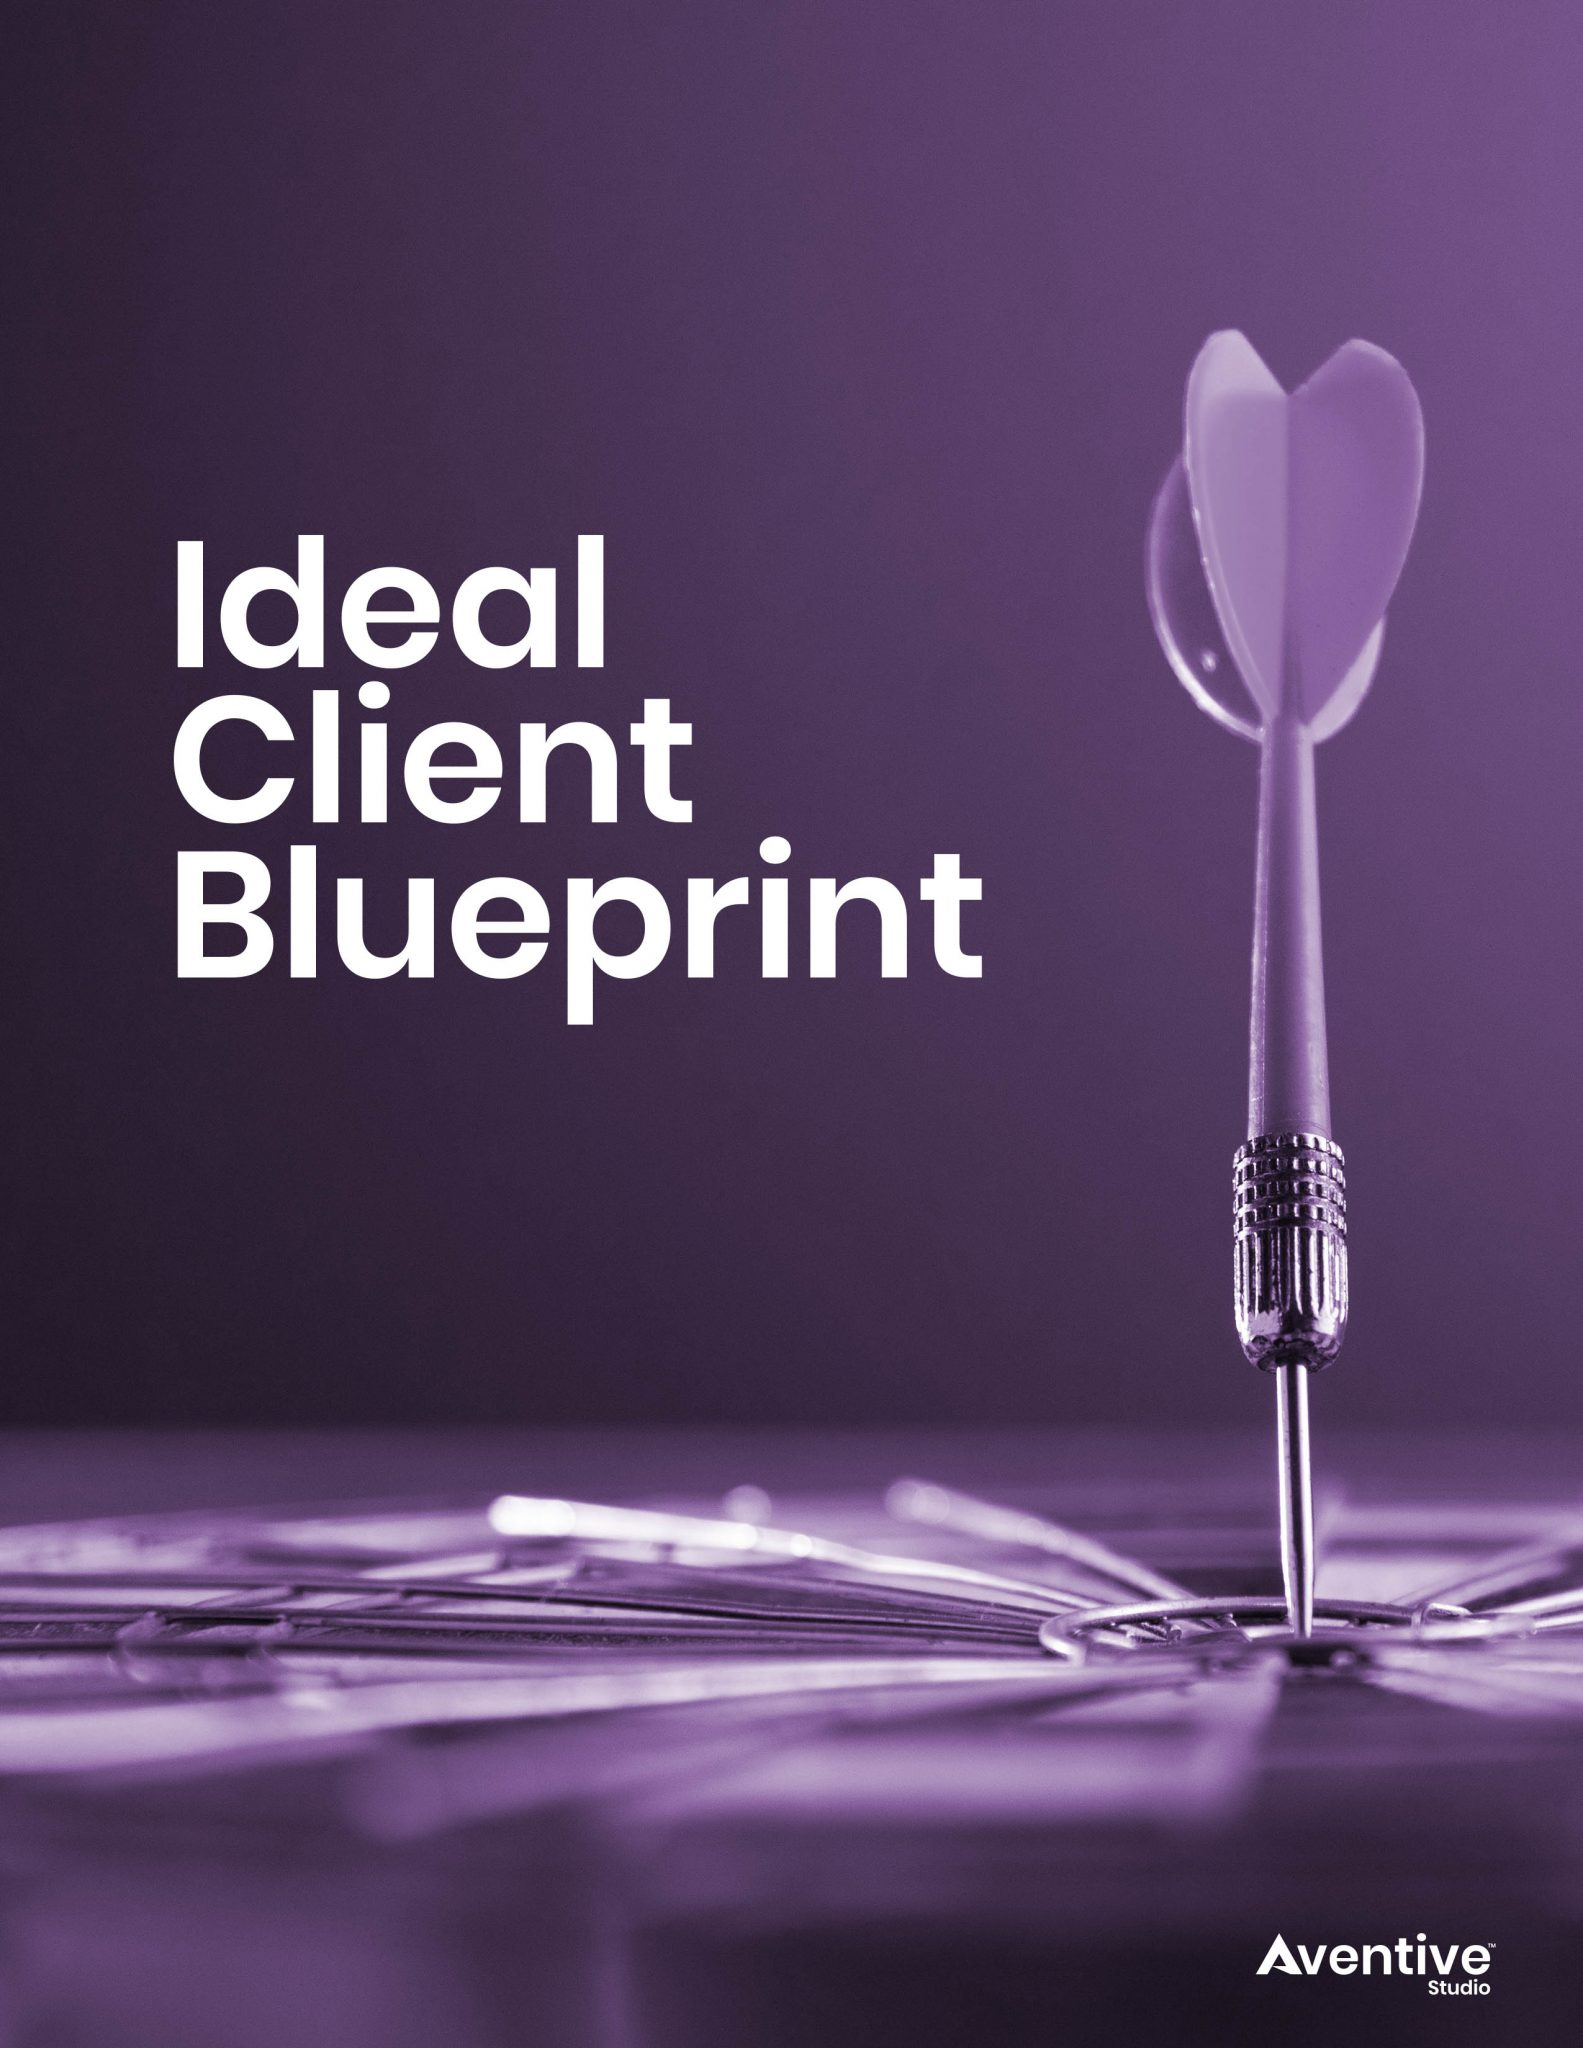 1 Ideal Client Blueprint Cover